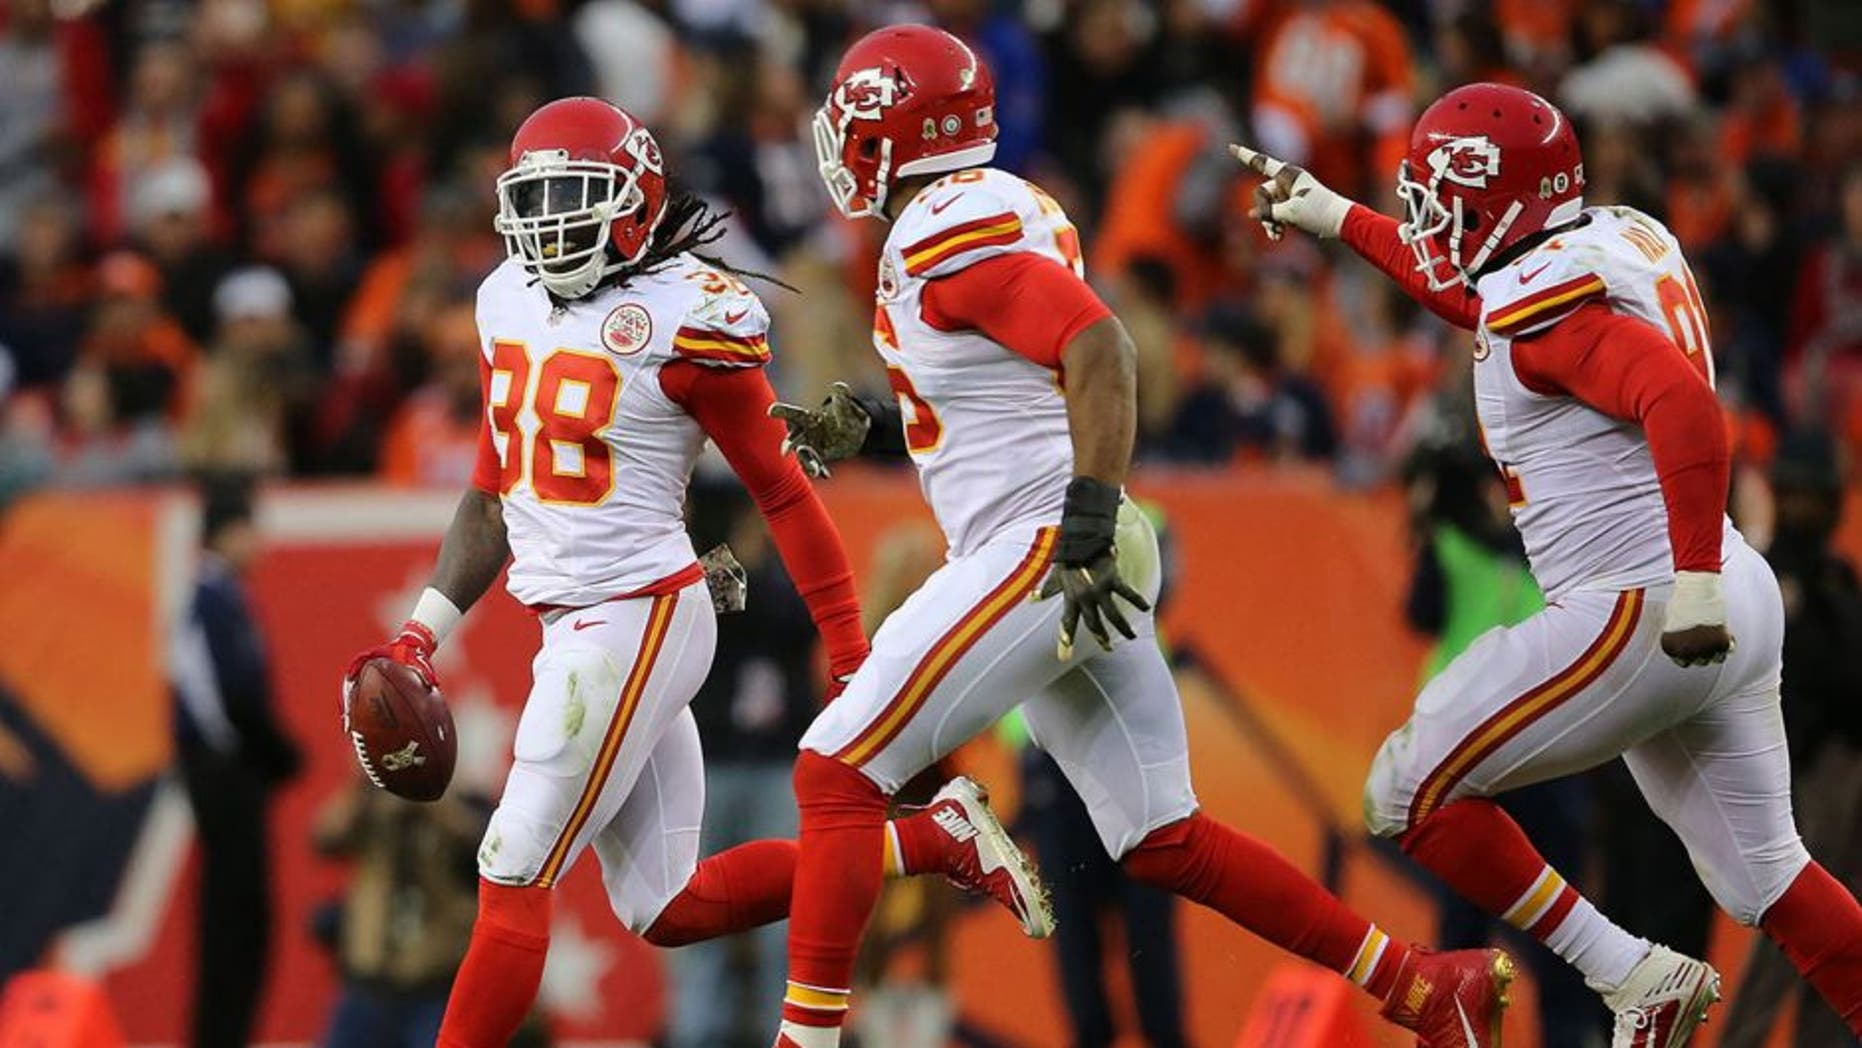 DENVER, CO - NOVEMBER 15: Ron Parker #38 of the Kansas City Chiefs celebrates his interception of a pass by Peyton Manning #18 of the Denver Broncos with Derrick Johnson #56 and Tamba Hali #91 of the Kansas City Chiefs at Sports Authority Field at Mile High on November 15, 2015 in Denver, Colorado. The Chiefs defeated the Broncos 29-13. (Photo by Doug Pensinger/Getty Images)